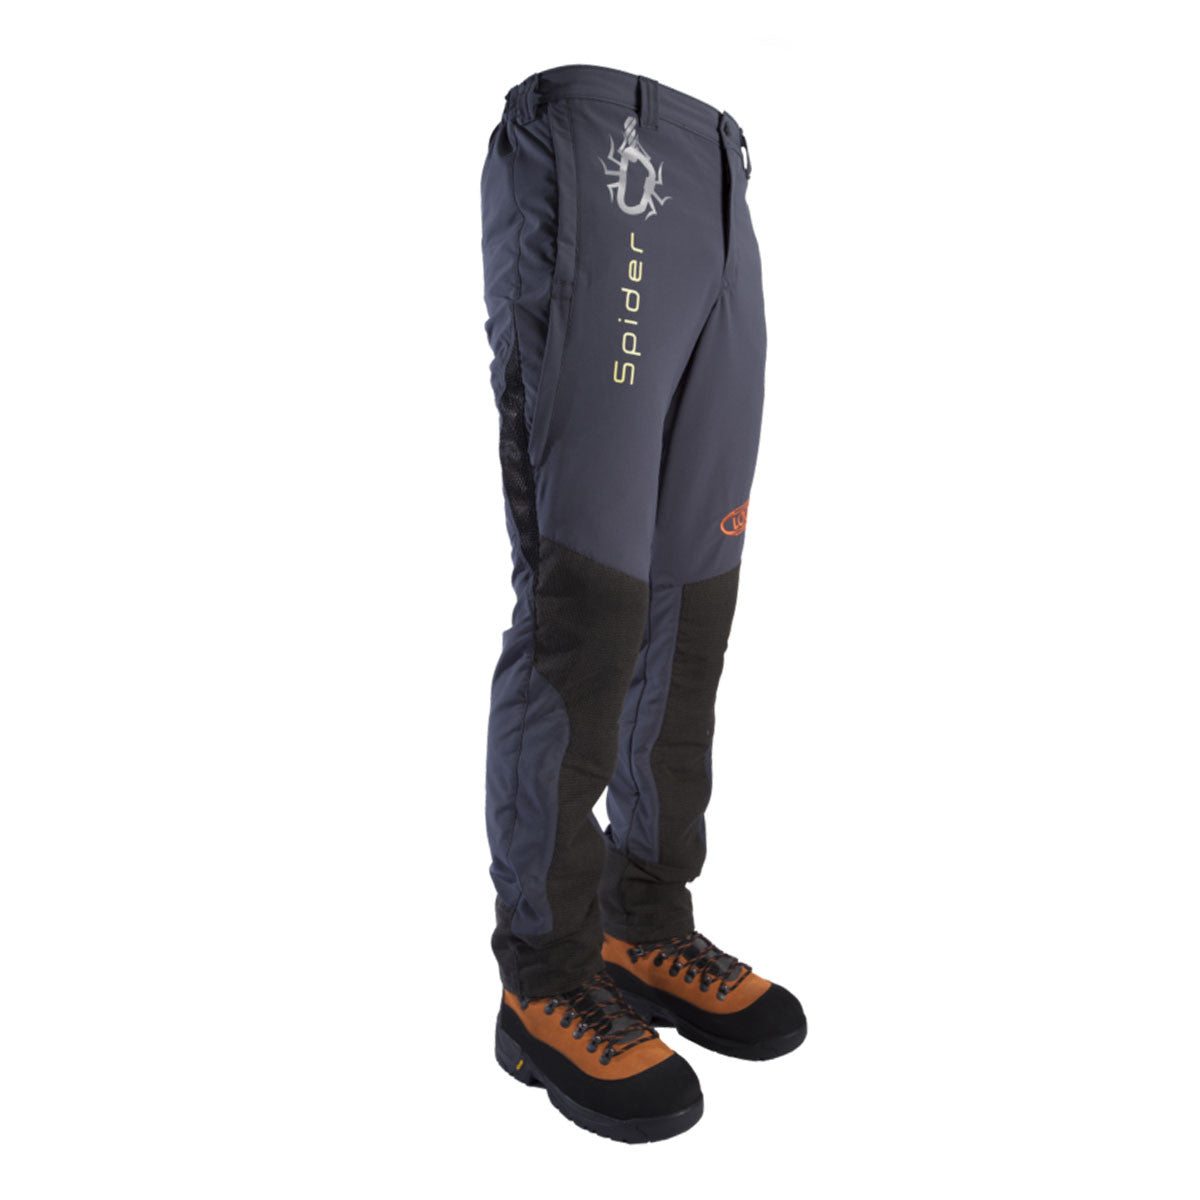 clearance sale super service world-wide renown Clogger SPIDER Climbing Trousers